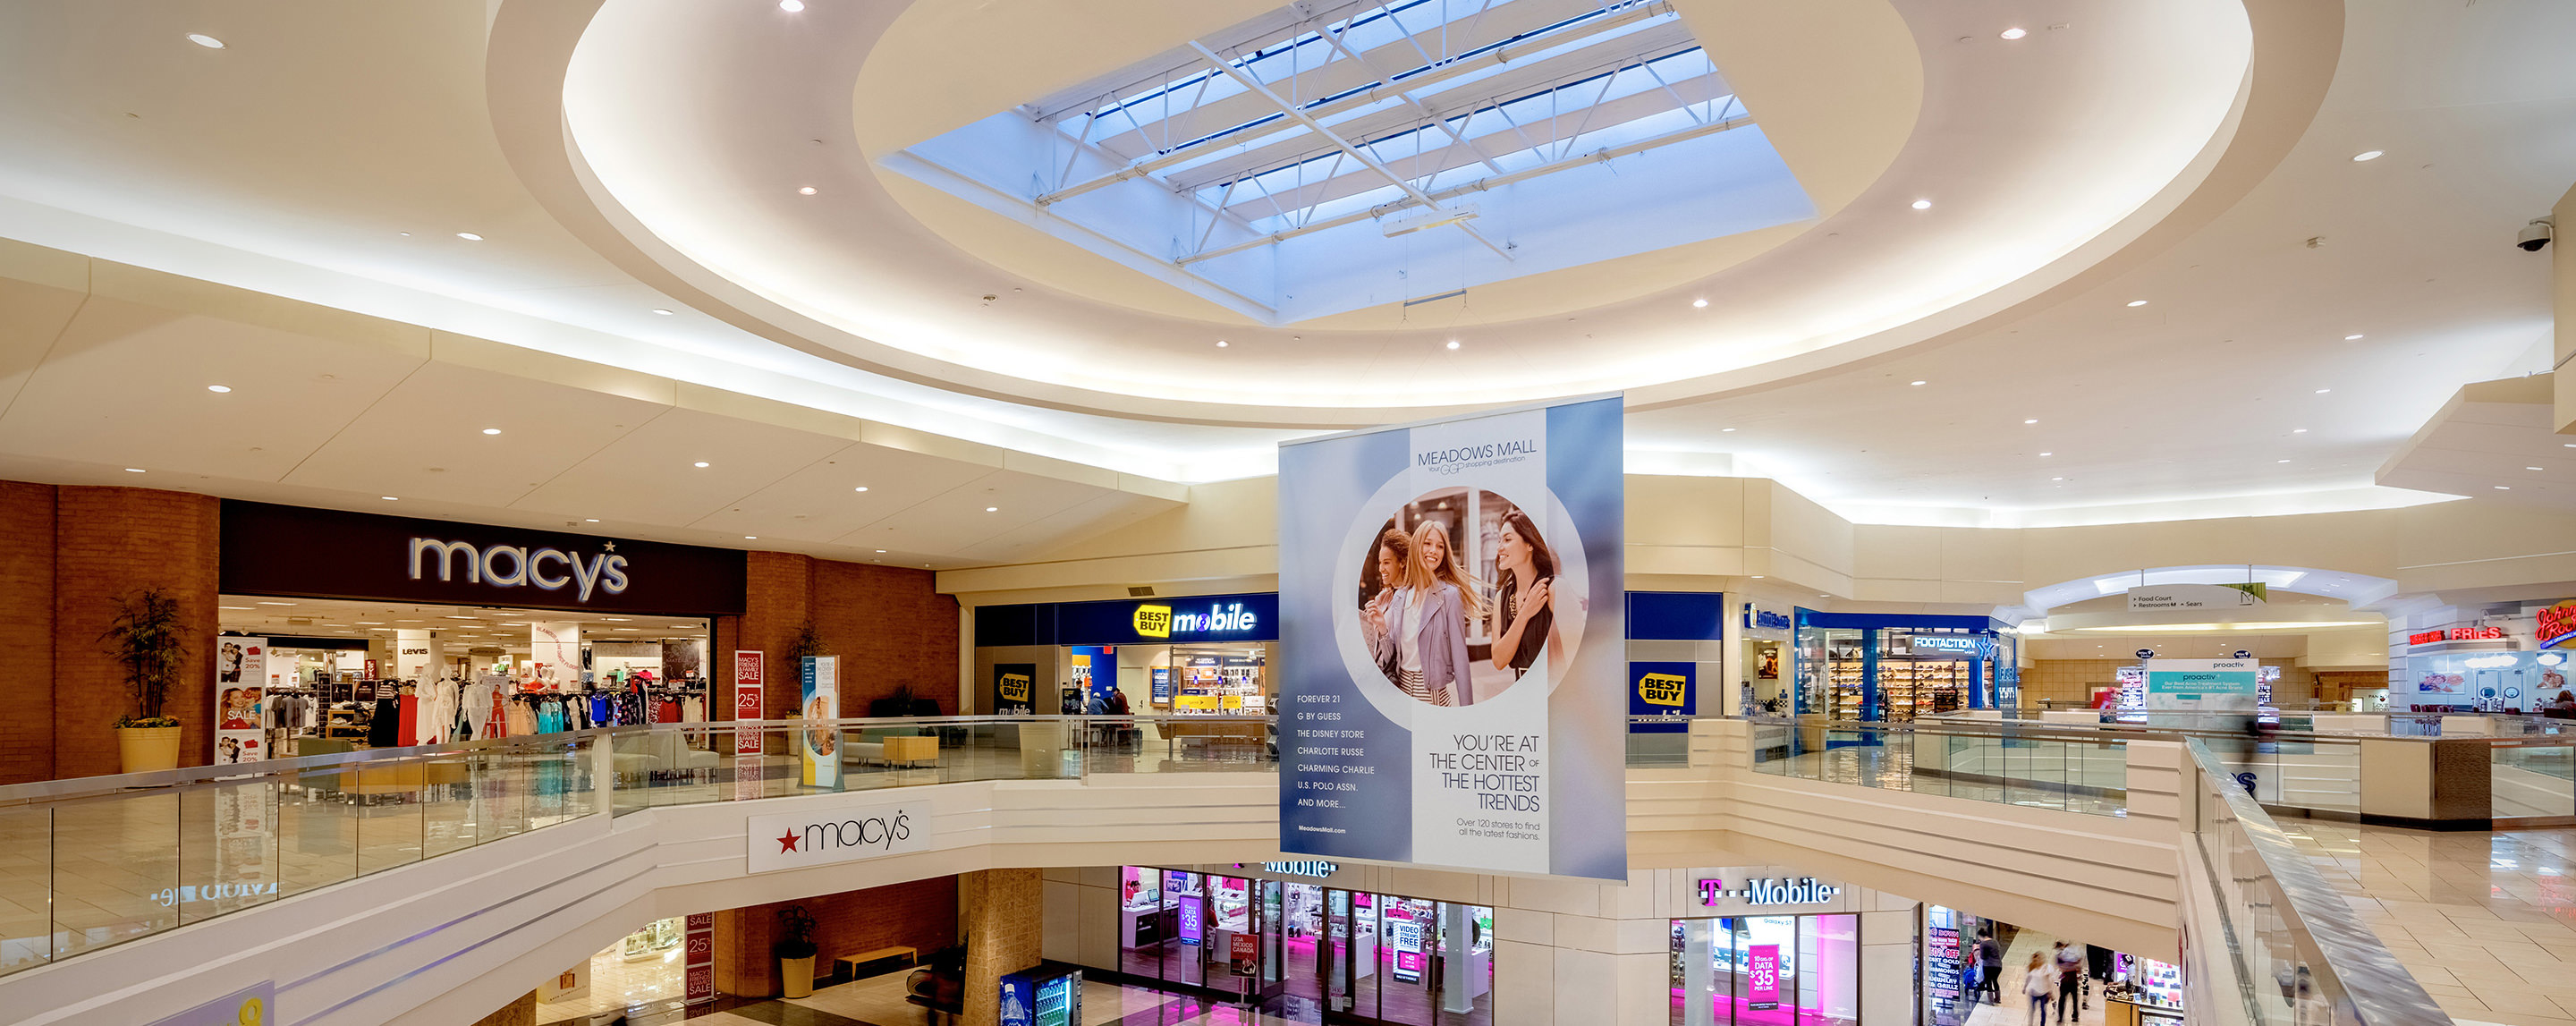 Meadows Mall image 2